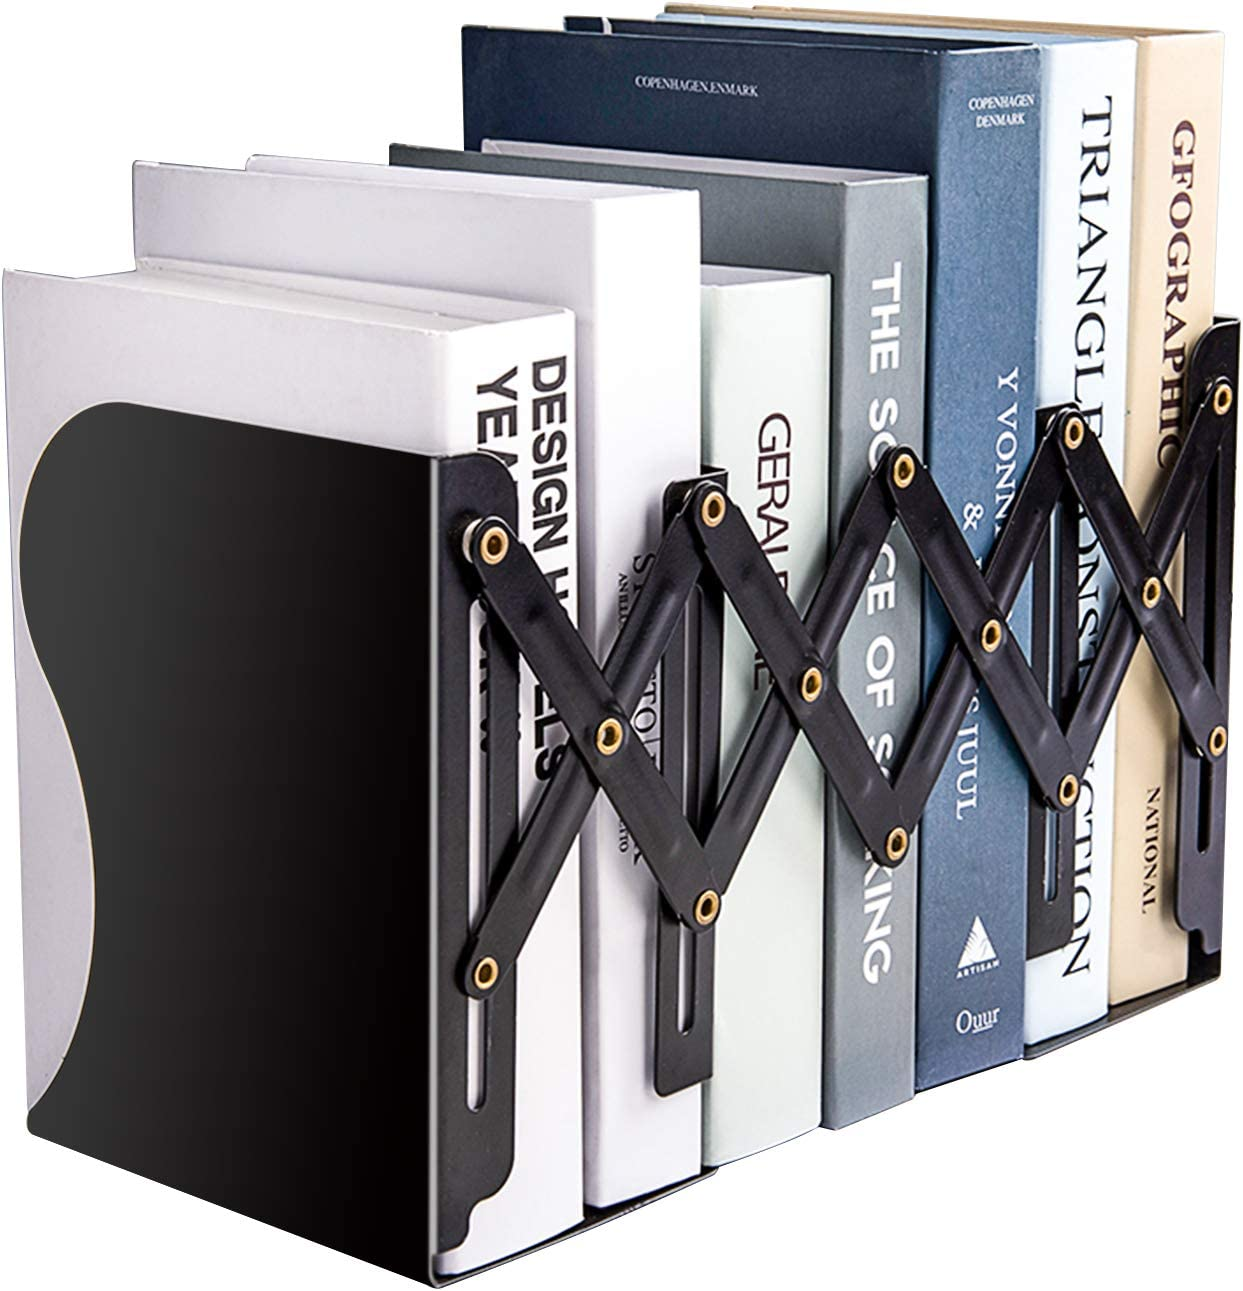 MDHAND Adjustable Bookend, Desk Magazine File Organizer Holder, Desk Organizer and Accessories for Office, Books, Papers, Extends up to 19 inches